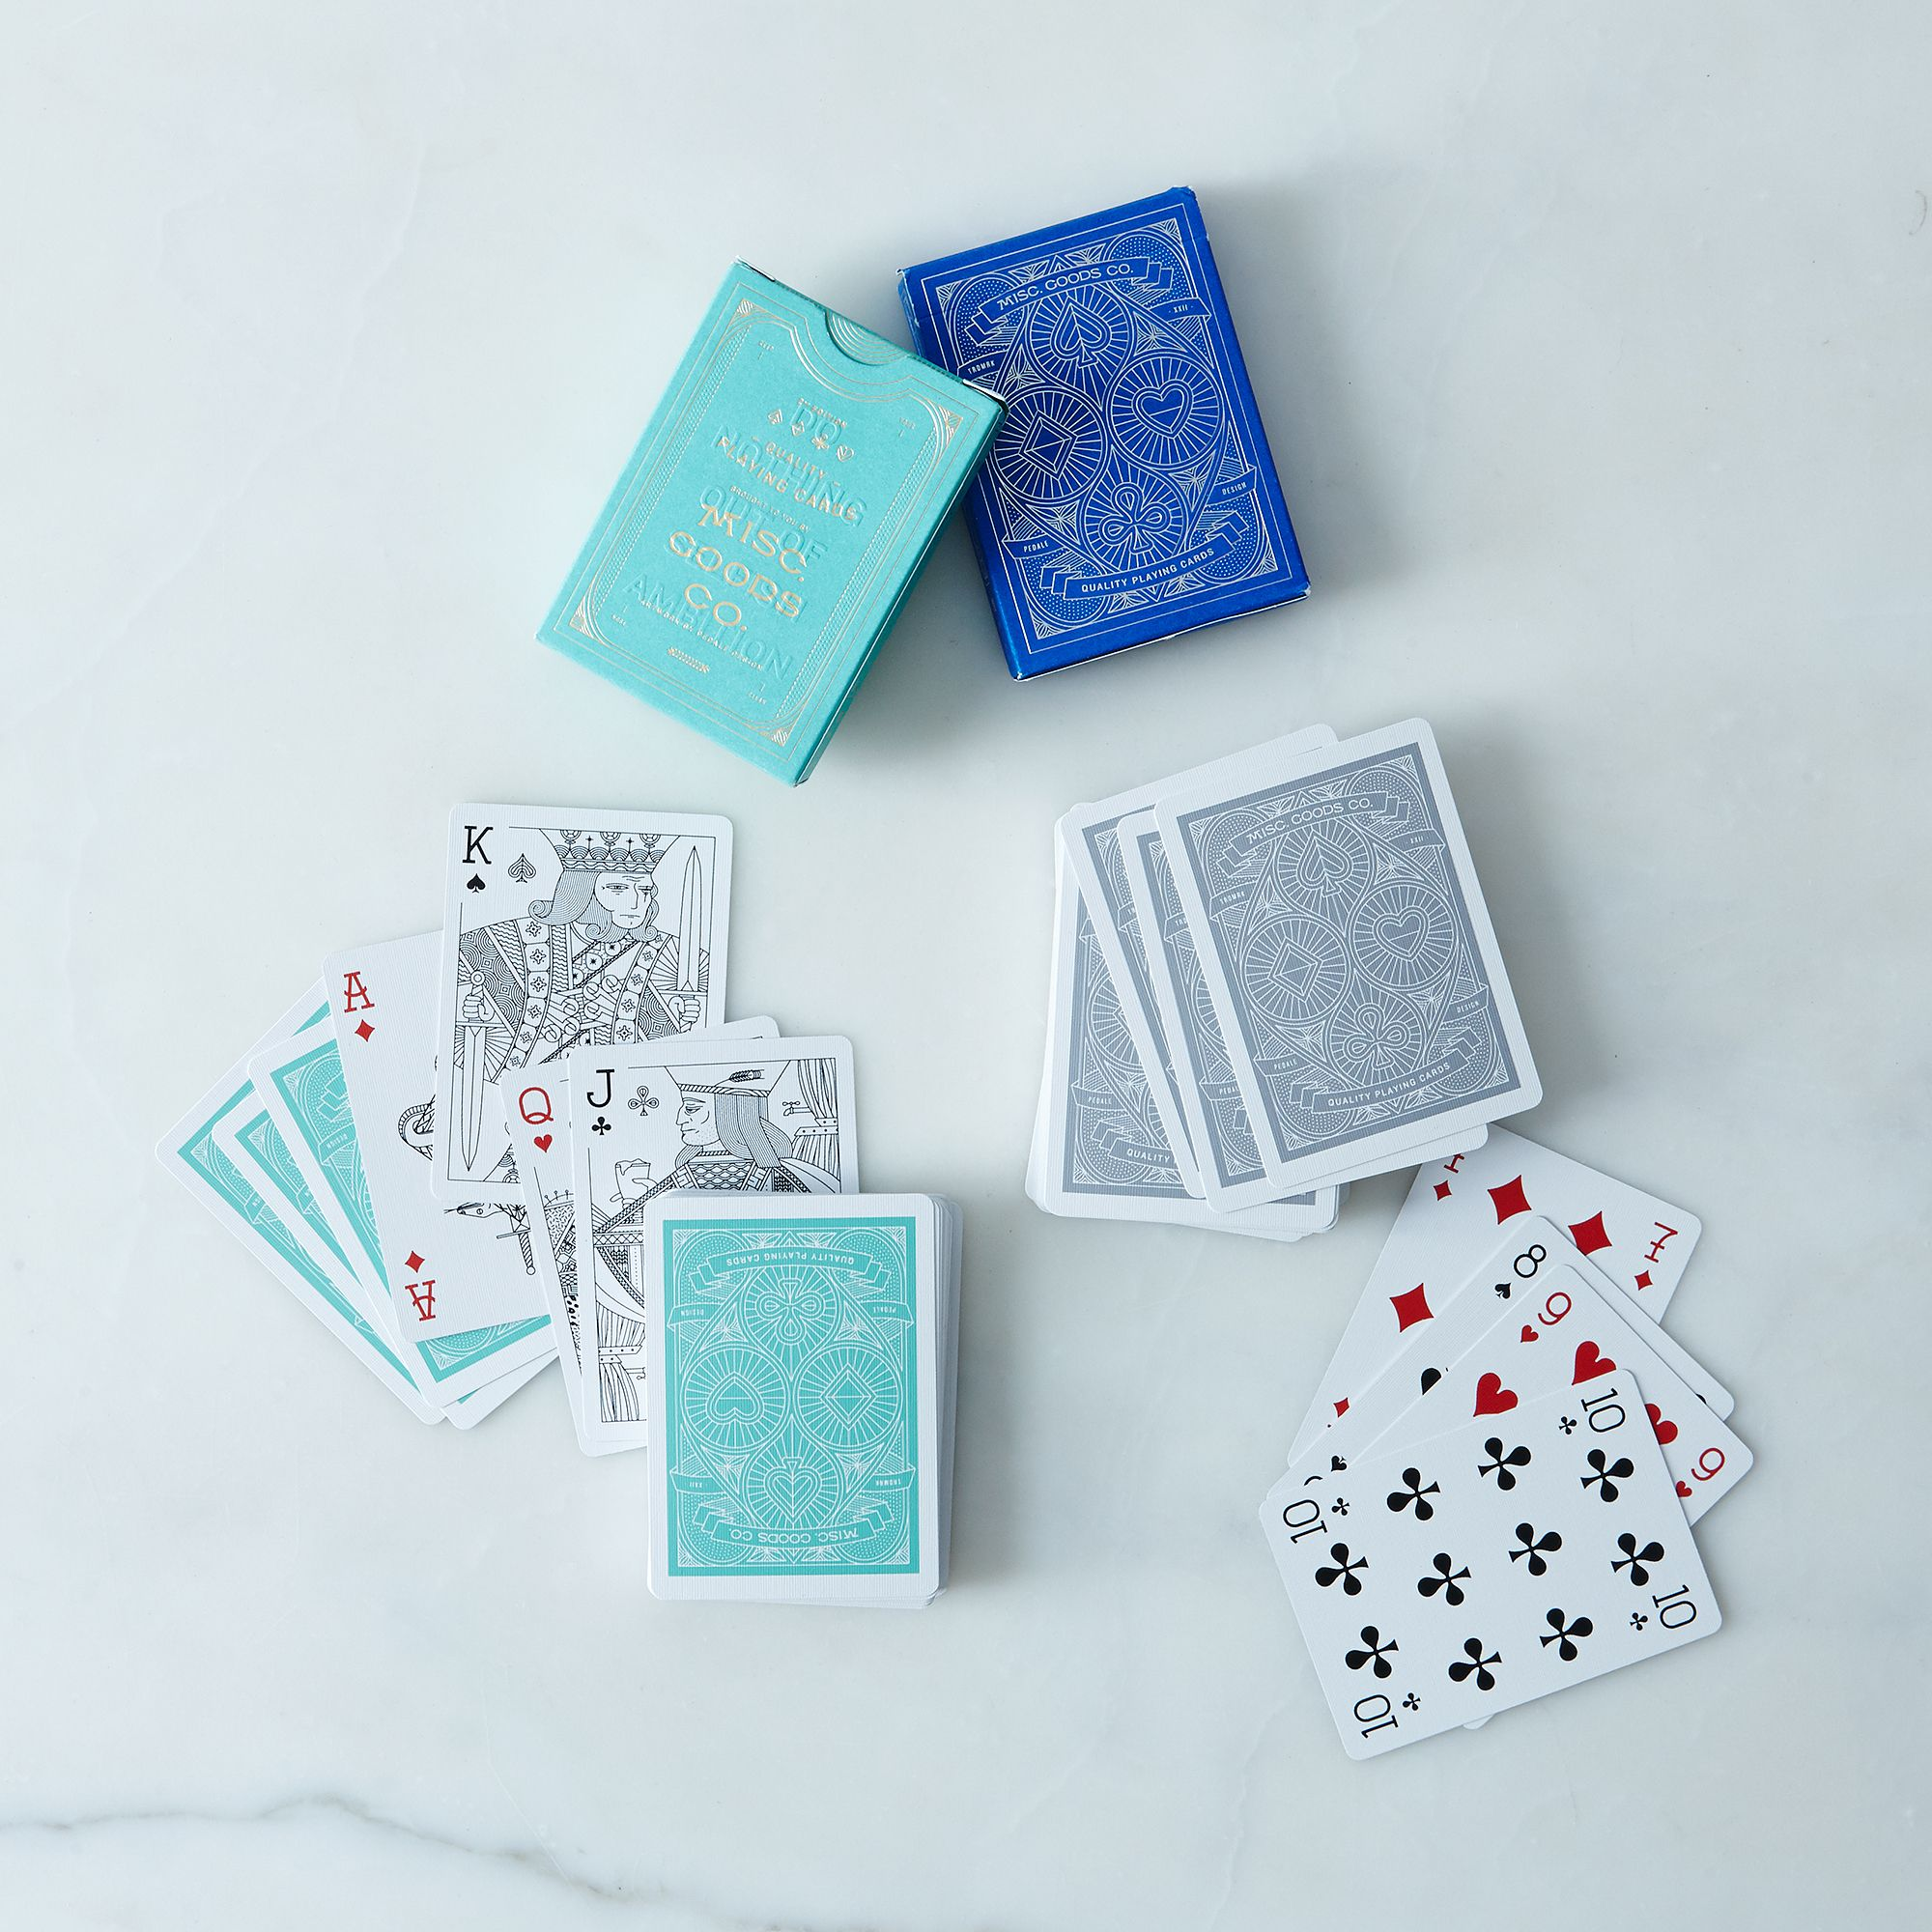 Designer Playing Cards (2 Decks) - Cobalt and Turquoise